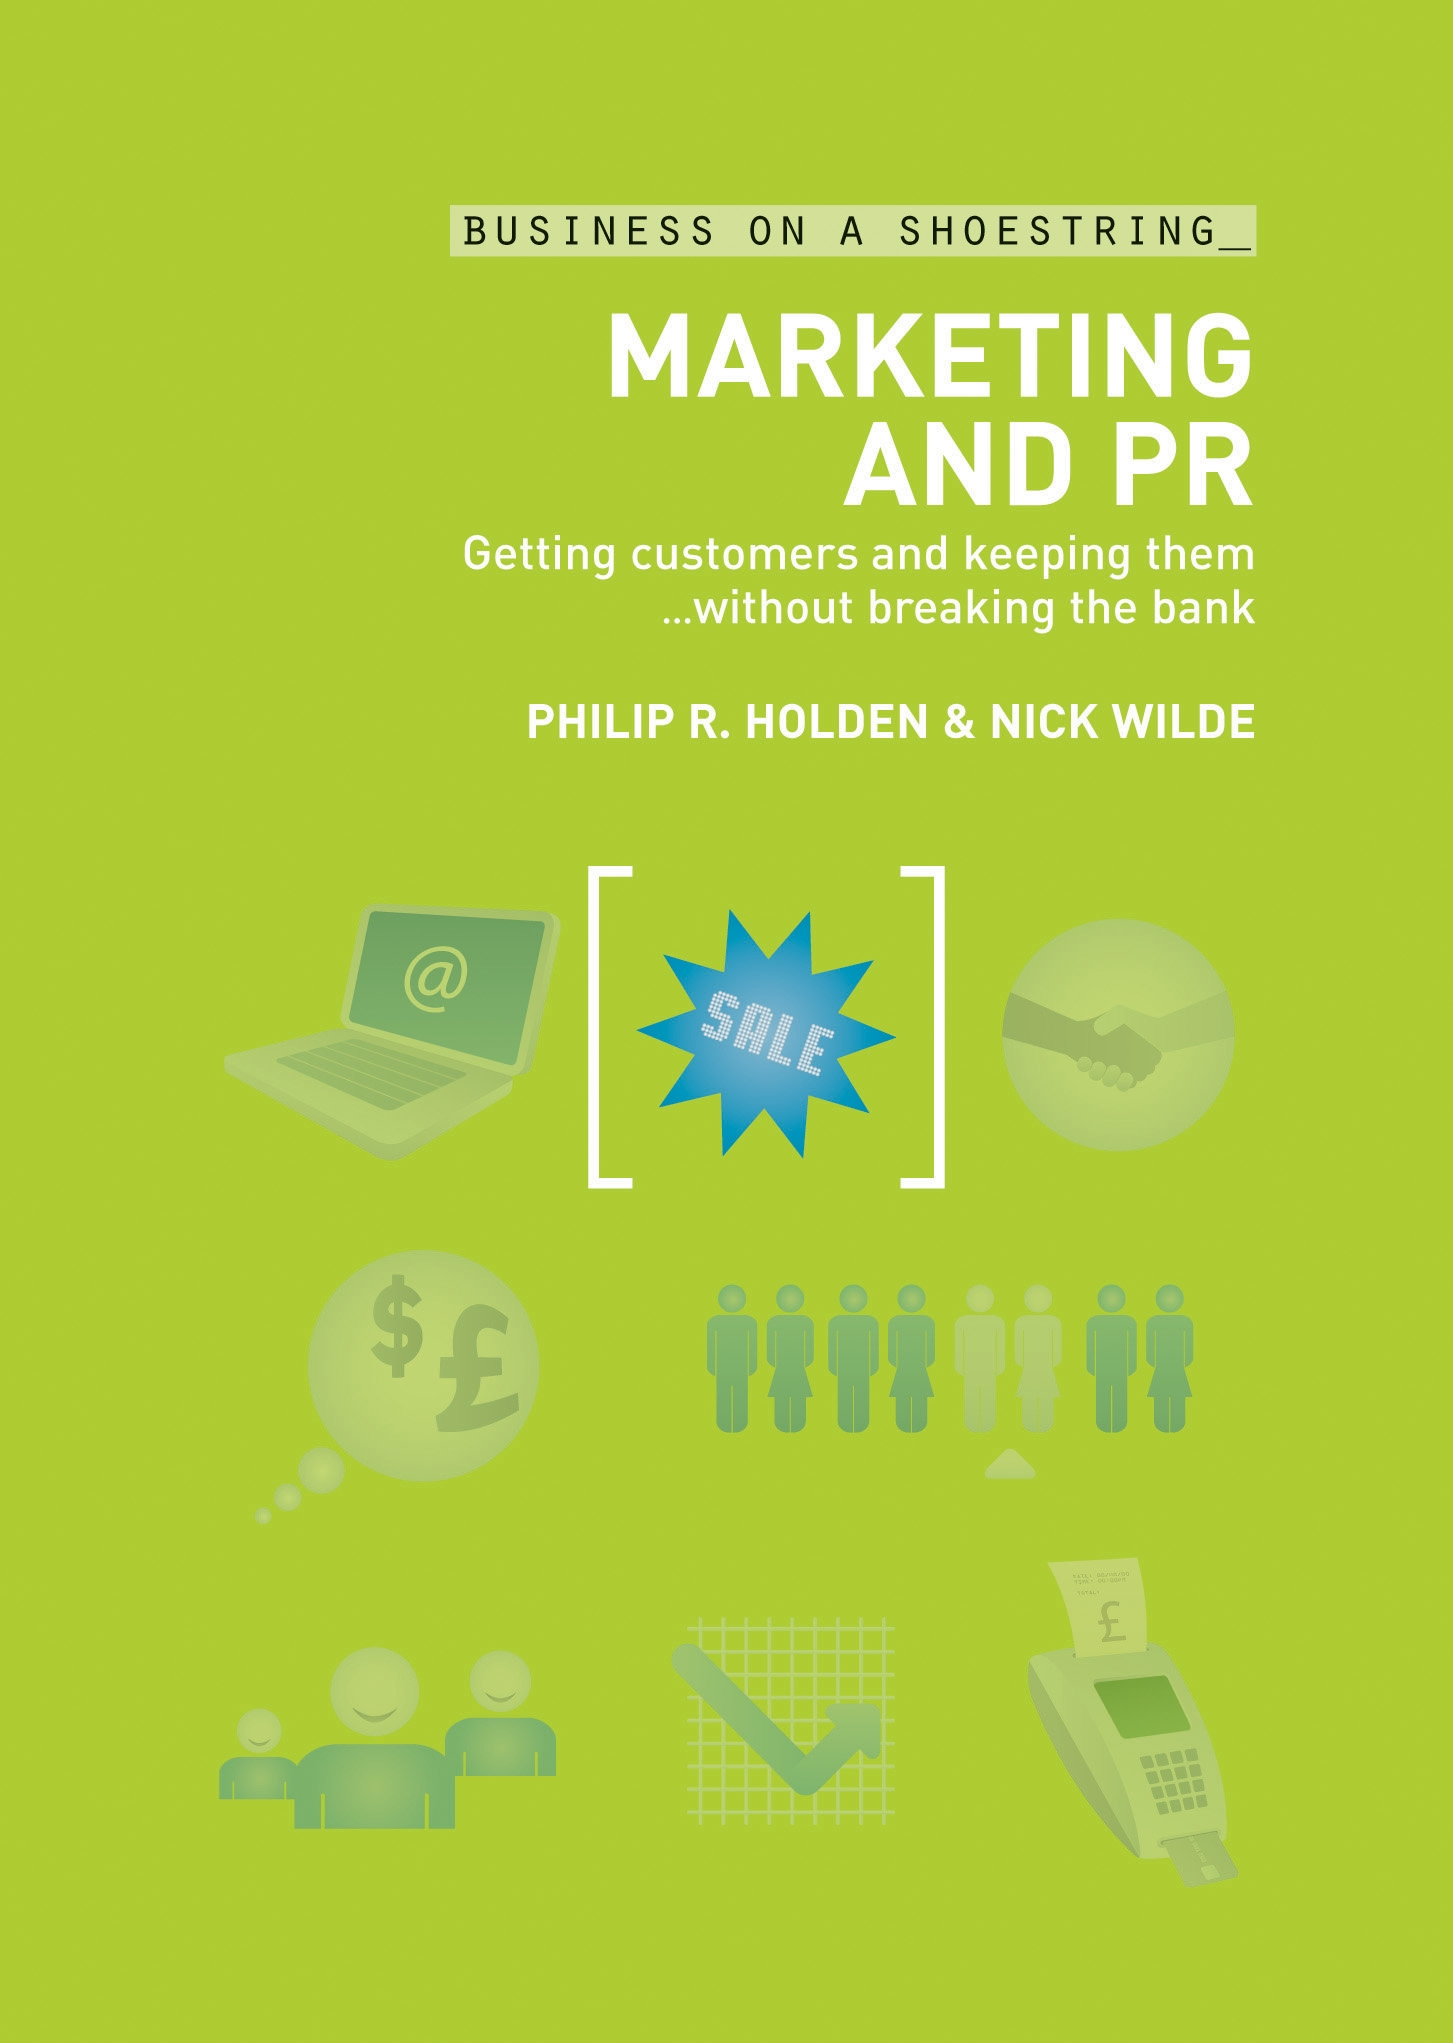 Marketing and PR Getting customers and keeping them...without breaking the bank